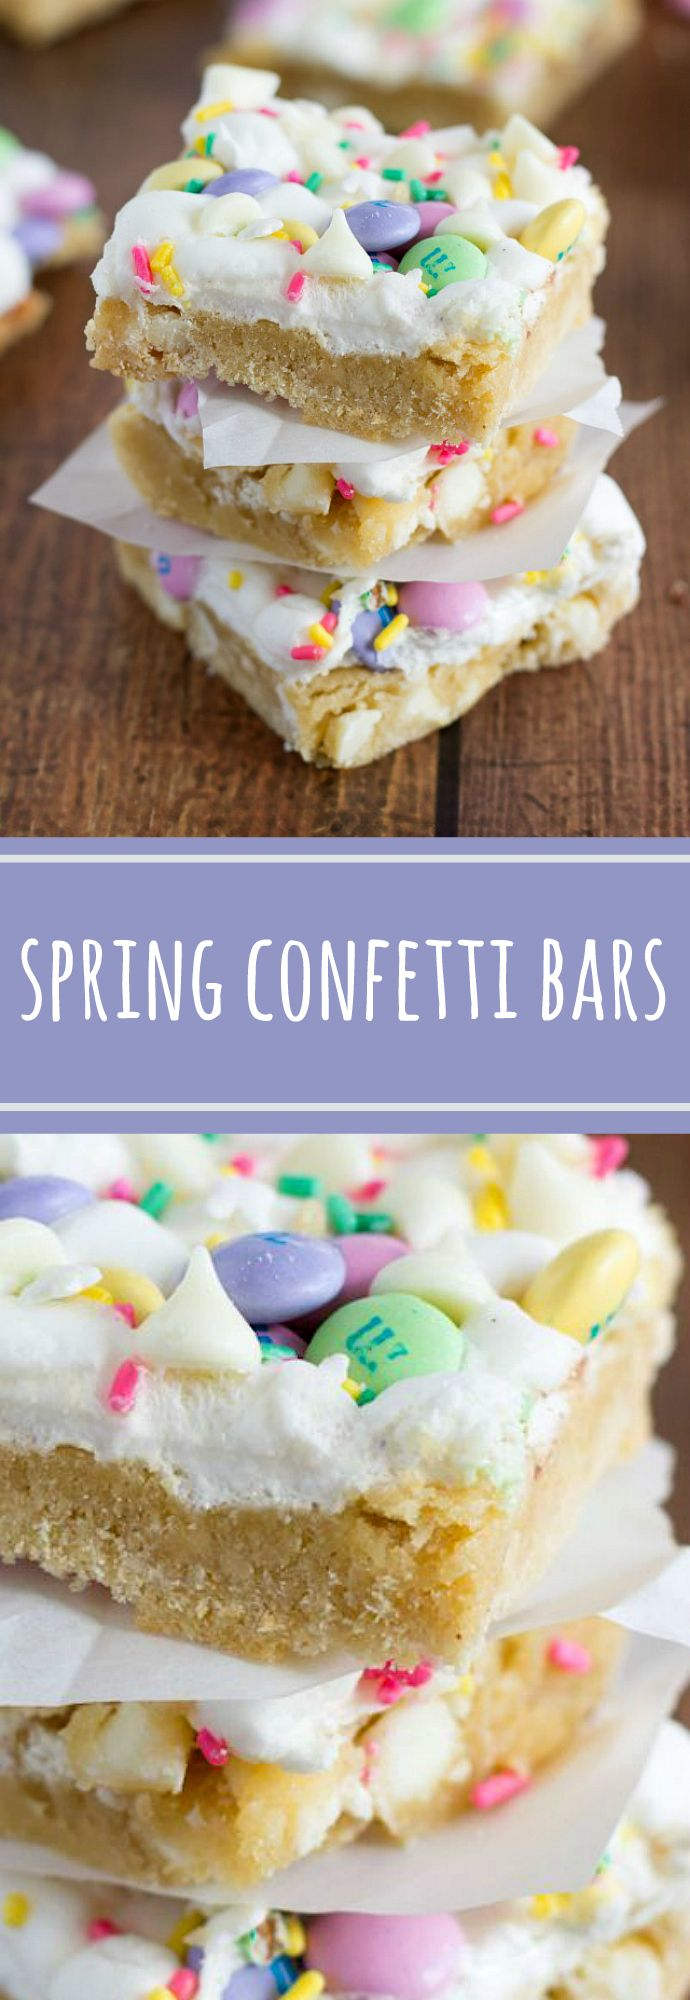 Delicious And Easy Spring Confetti Bars Perfect For An Easter Dessert